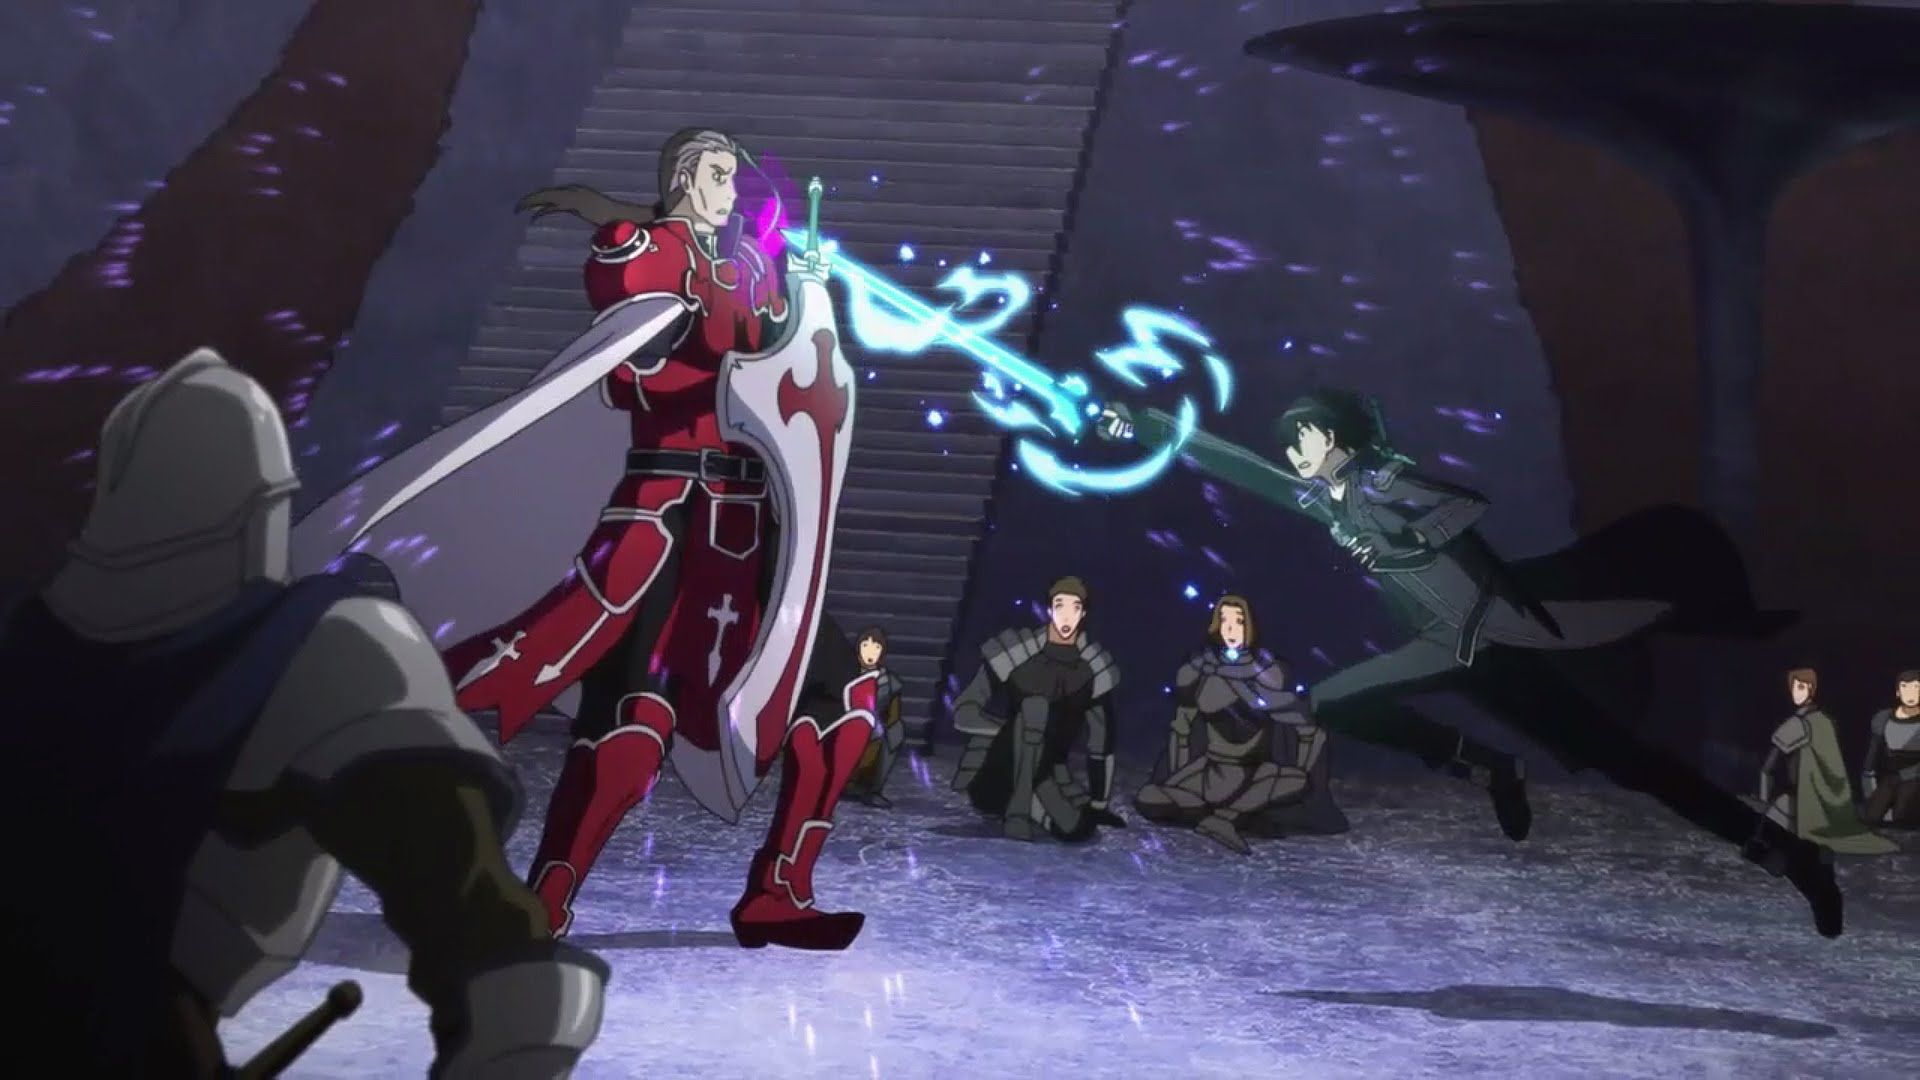 Most Epic Anime Fights 3 Sword Art Online Kirito Vs Kayaba